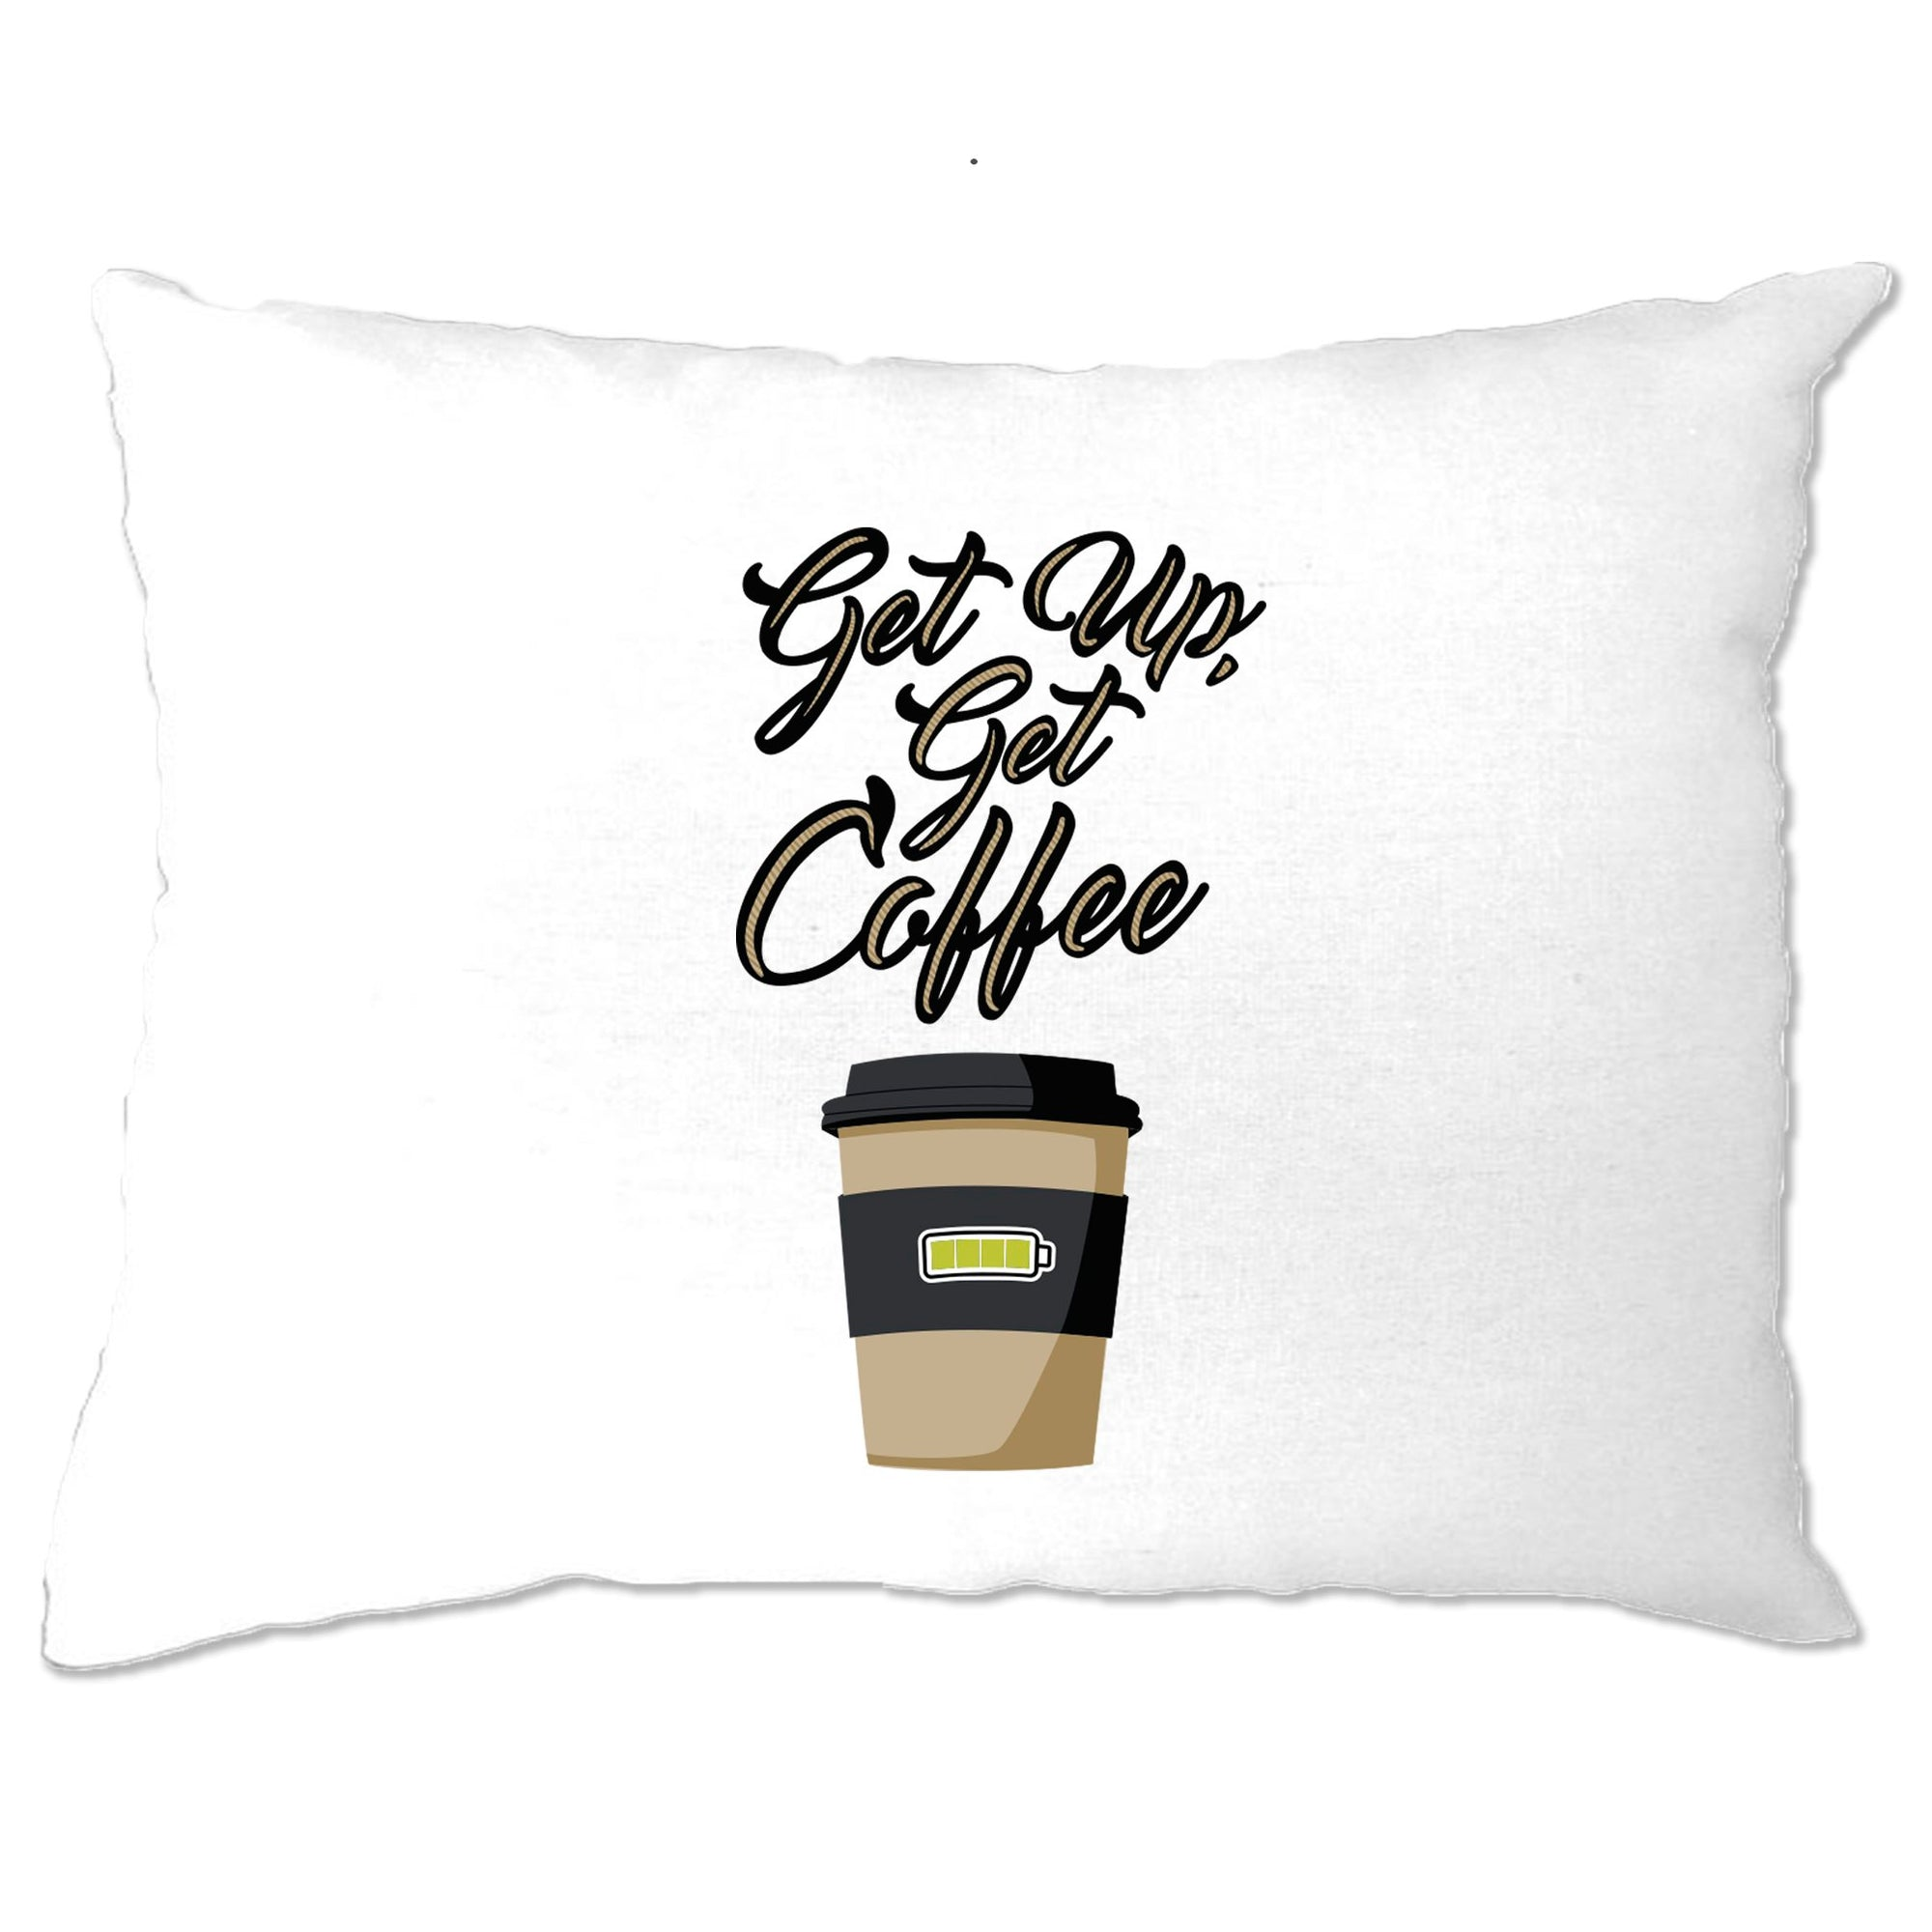 Morning Motivation Pillow Case Get Up, Get Coffee Slogan